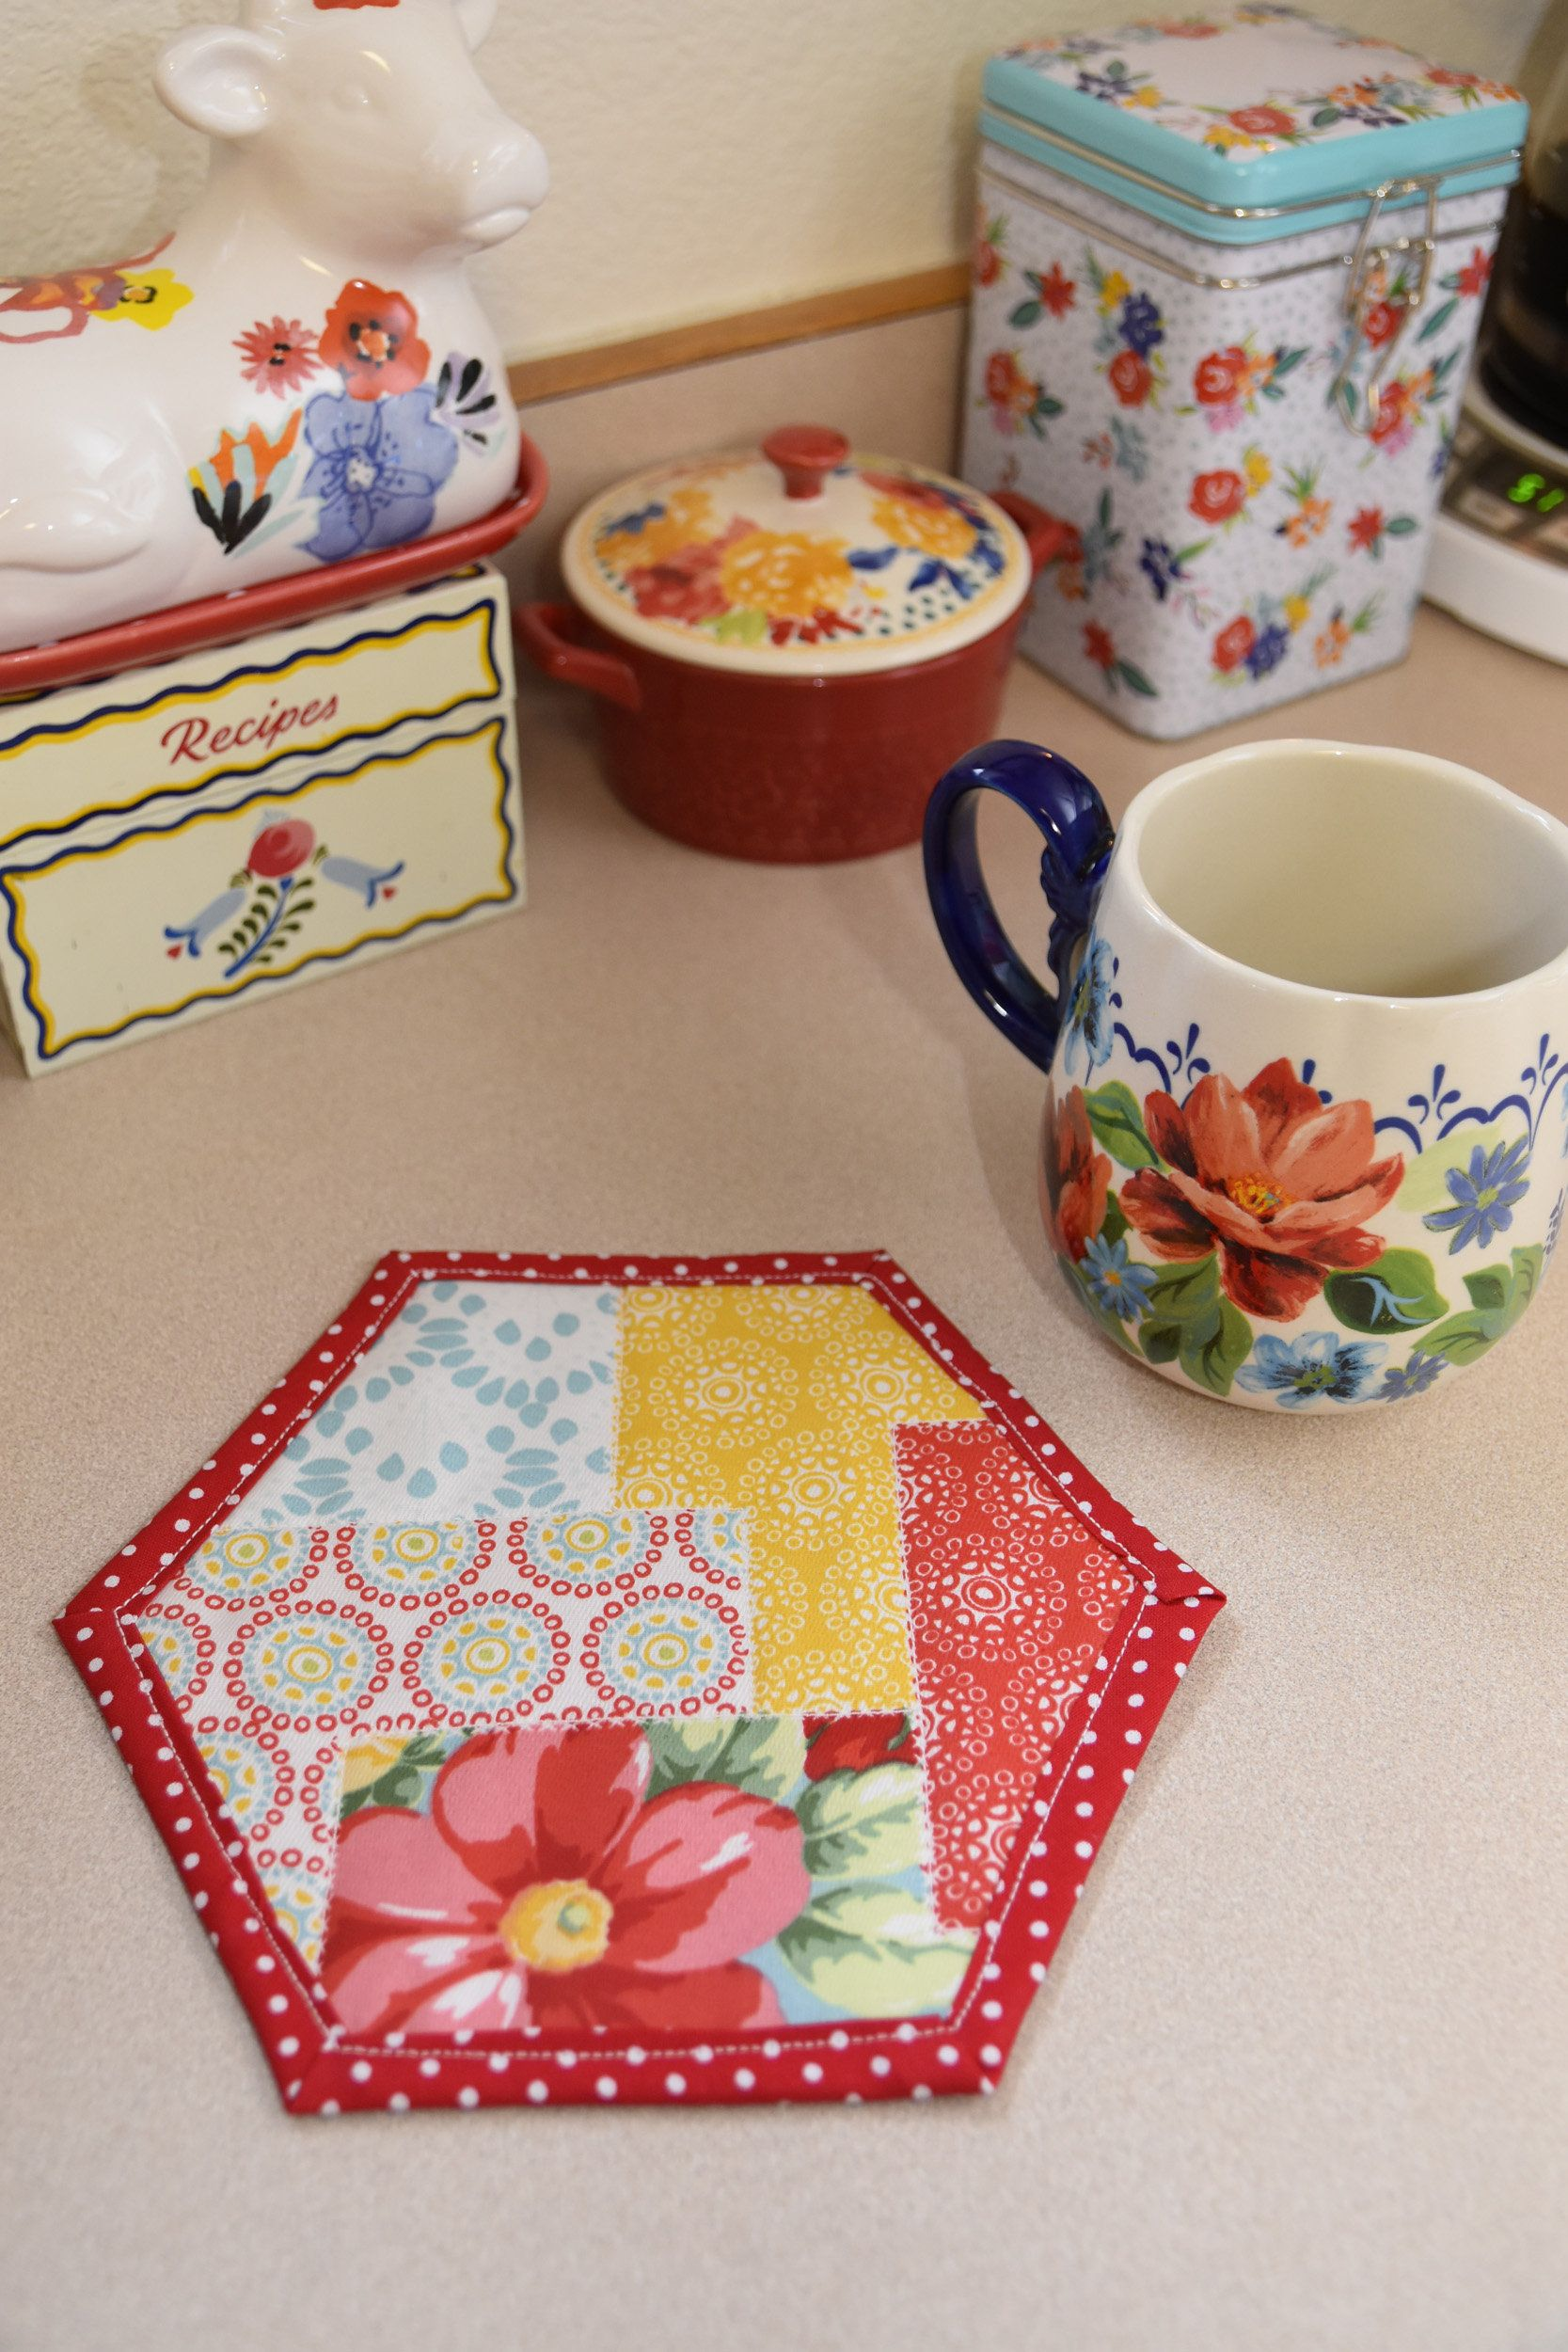 Pioneer Woman Kitchen Decor Quilted Mug Rugs Farmhouse Decor Country Decor Vintage Kitchen Country Kitchen Farmhouse Kitchen Vintage Floral With Images Pioneer Woman Kitchen Shabby Chic Kitchen Decor Pioneer Woman Kitchen Decor